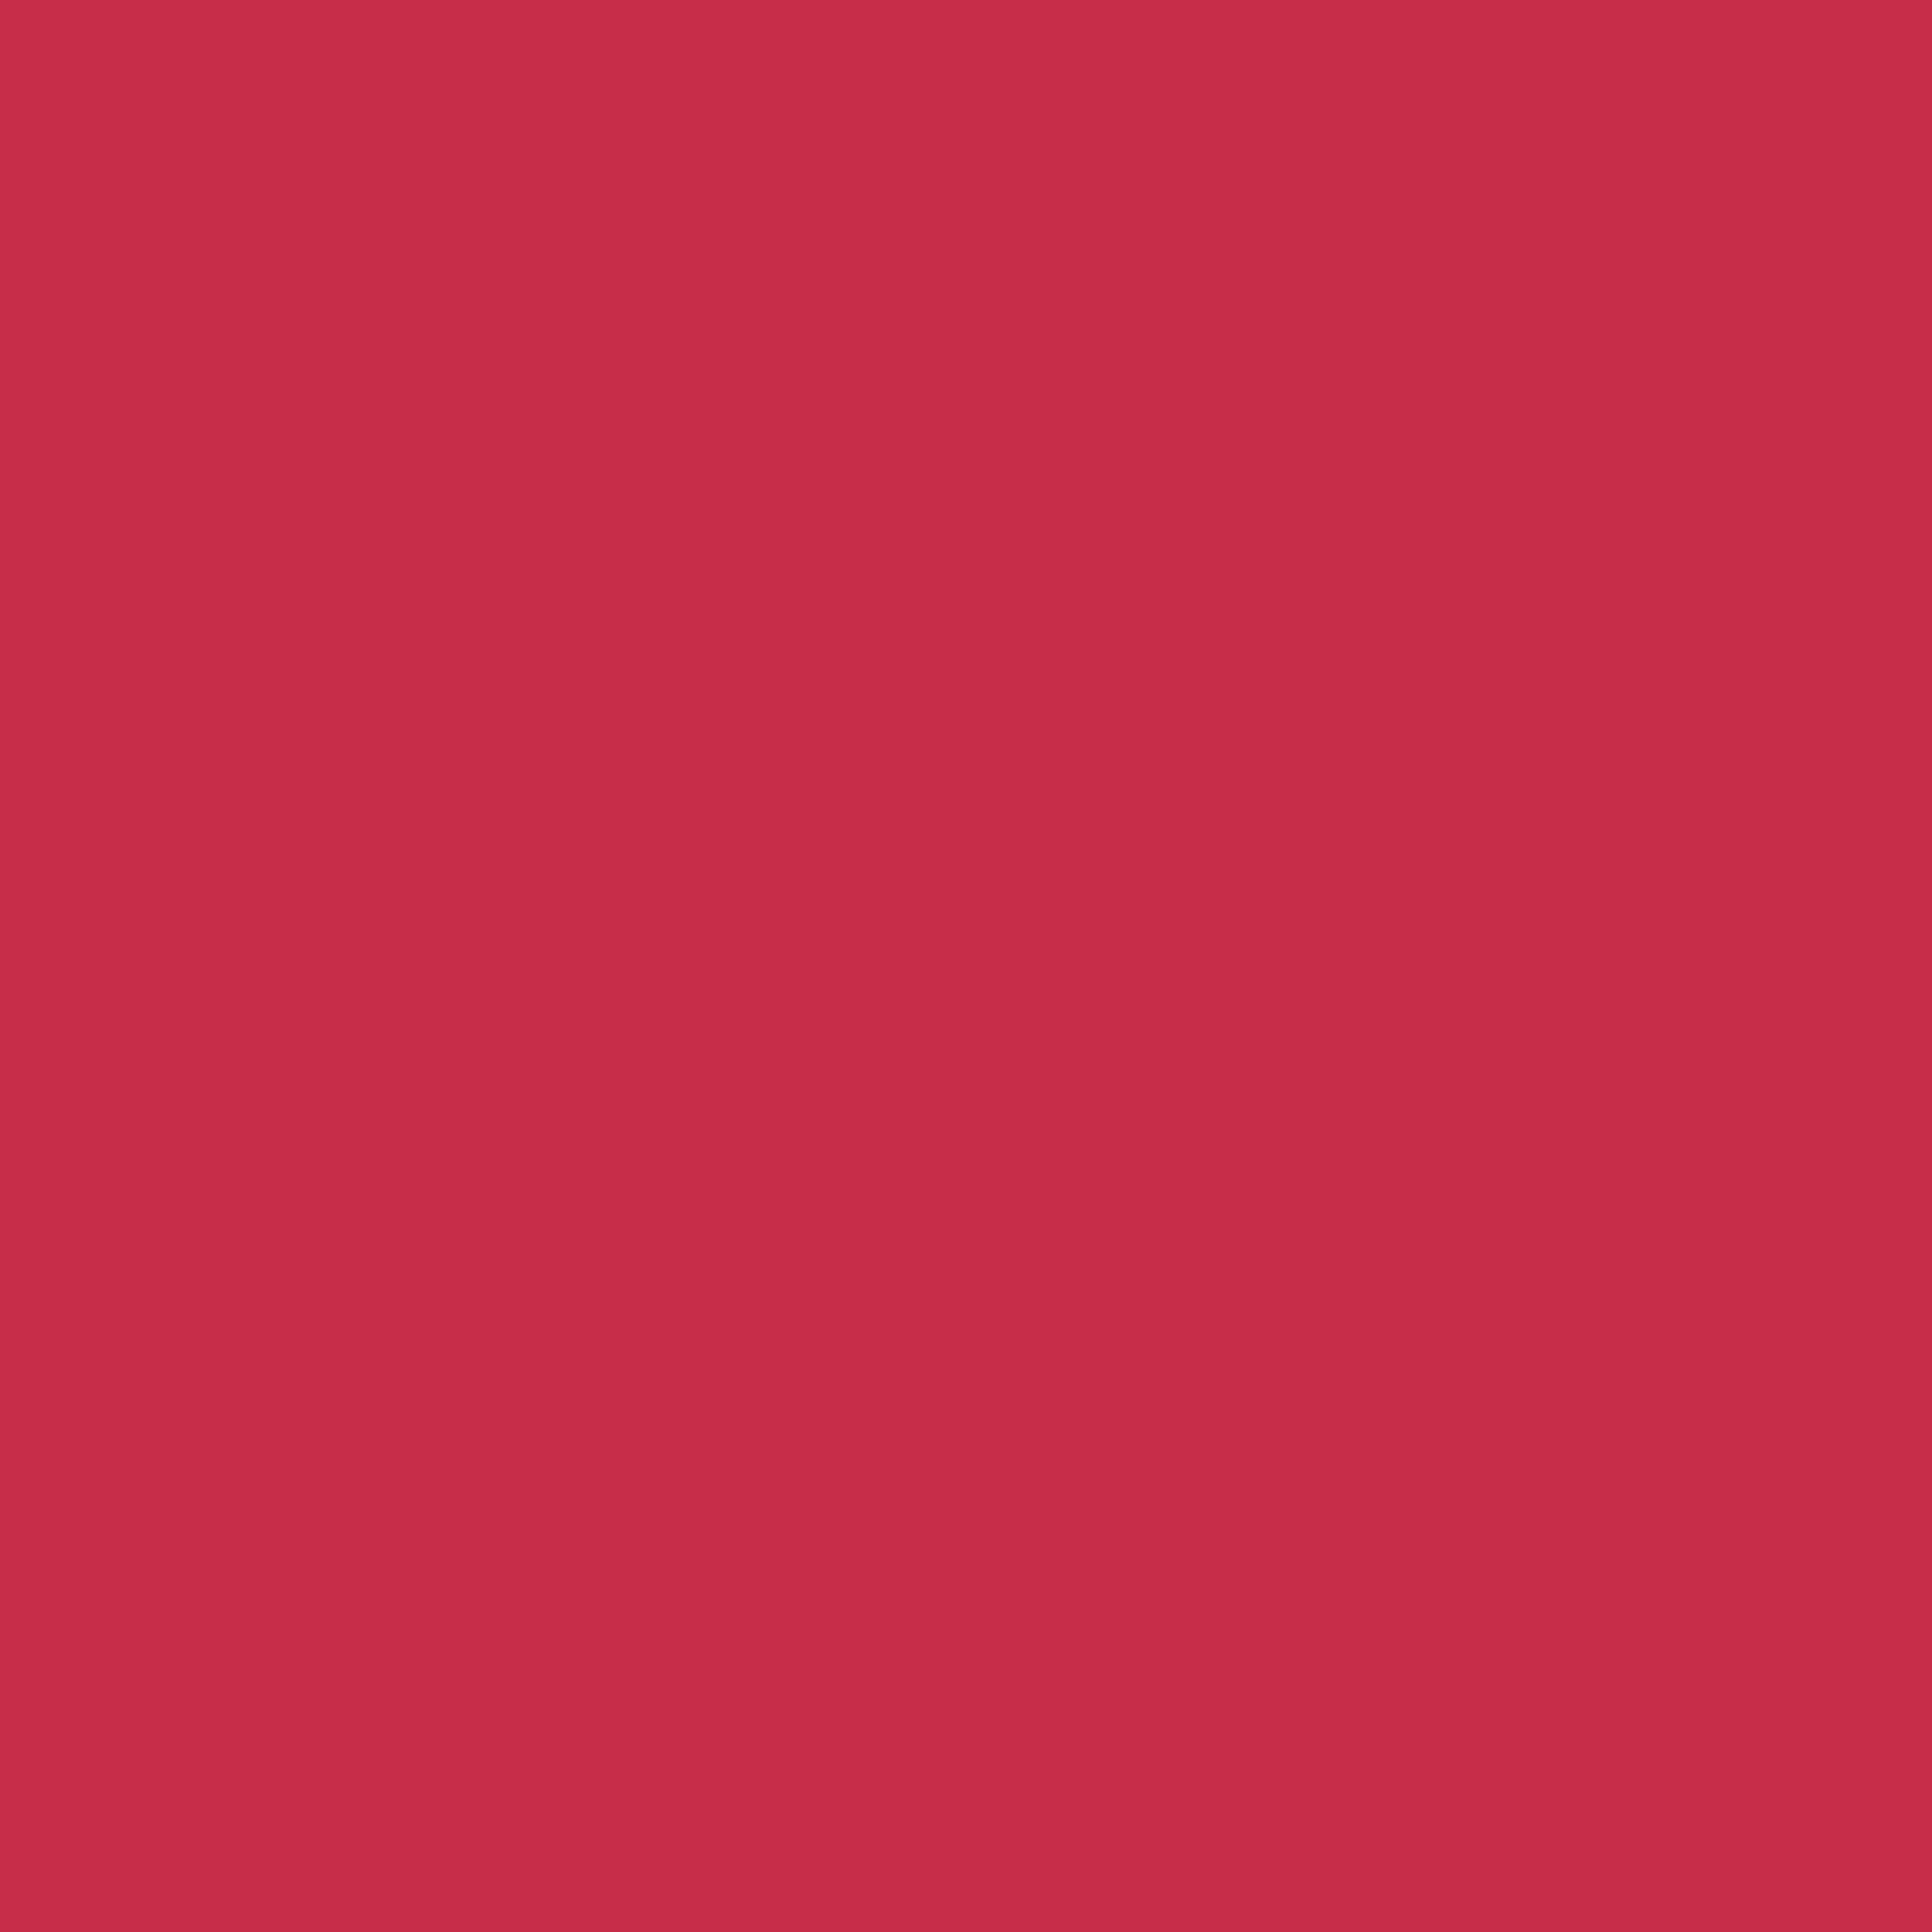 3600x3600 French Raspberry Solid Color Background